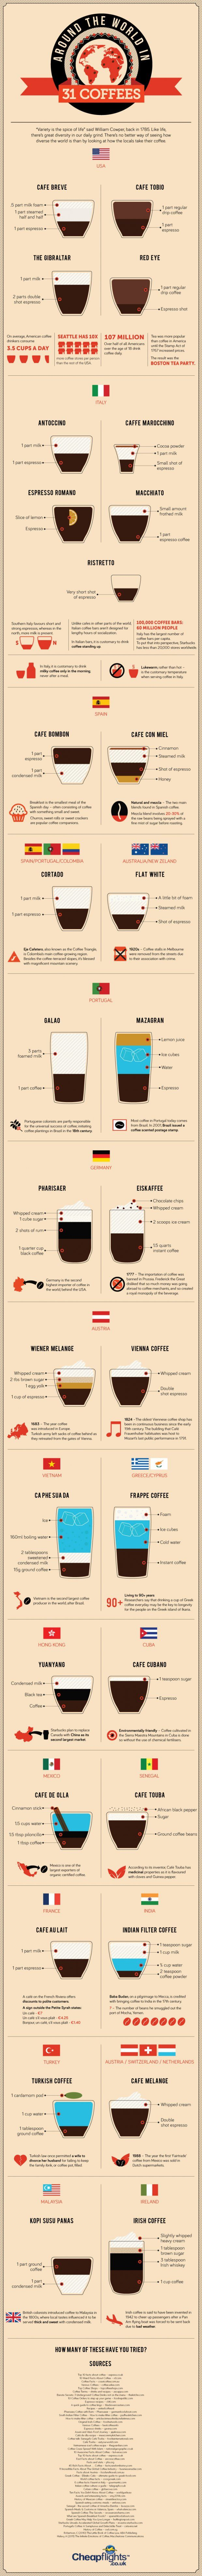 Most of us need that coffee kick in the morning to get us through the day. 2 sugars, soy milk, decaf – however you drink this liquid black gold, we all NEEDit. Check out this clever infographic showing us how people around the world drink their coffees!